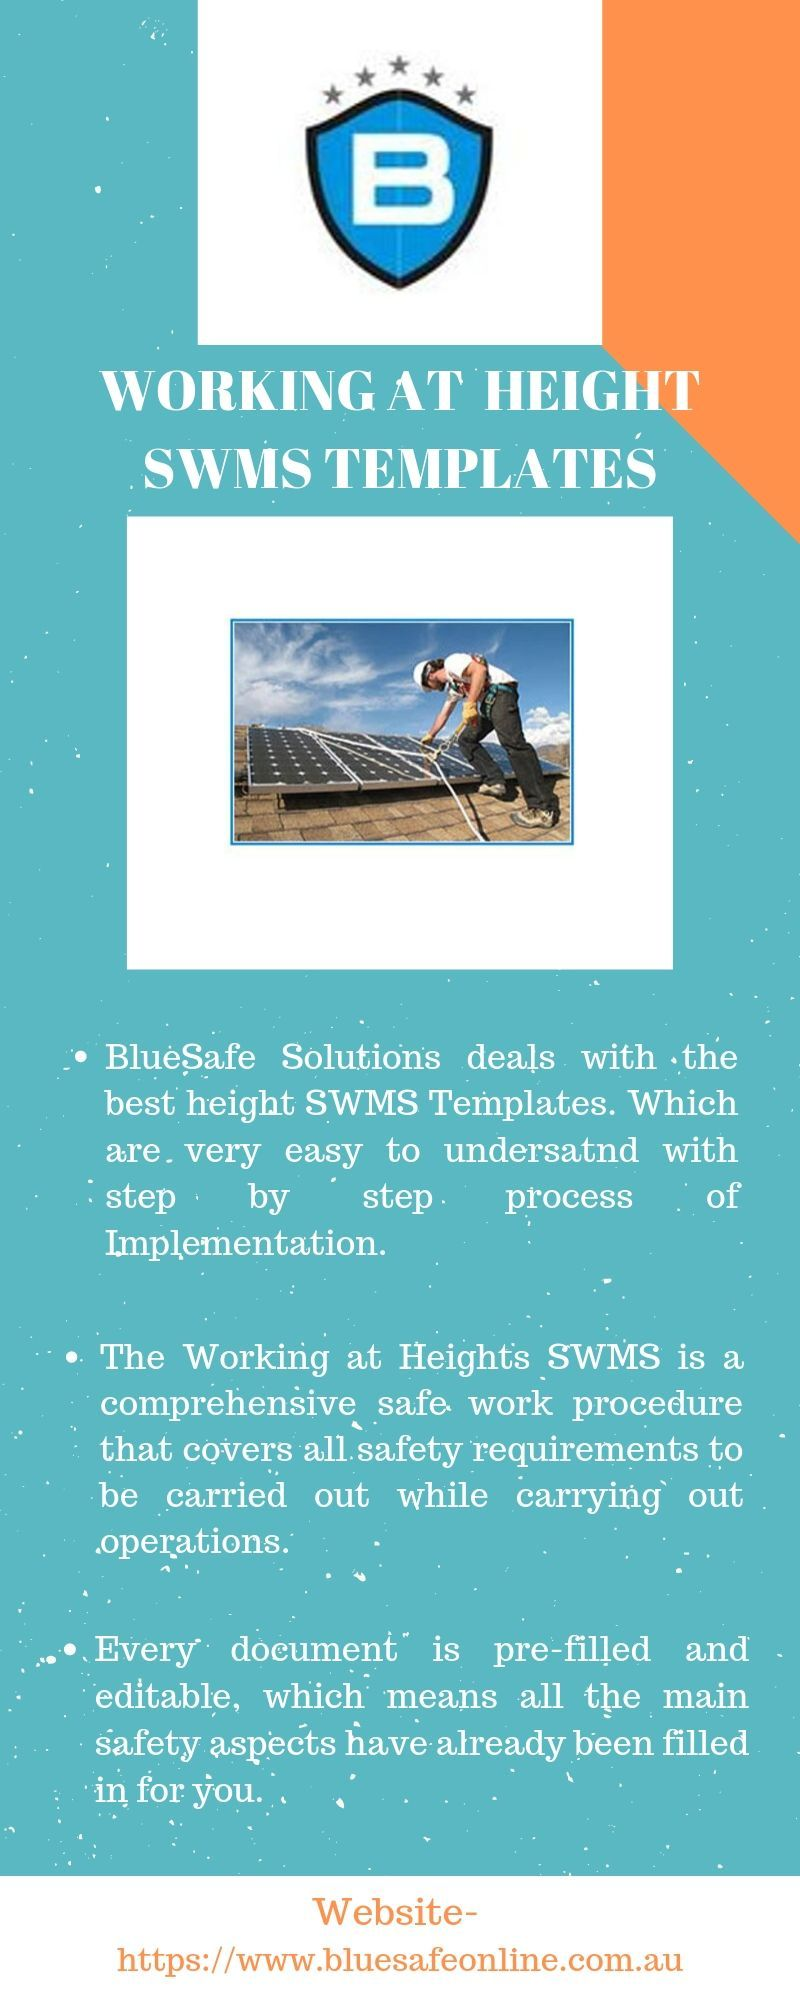 Working at Height SWMS Templates BlueSafe Solutions